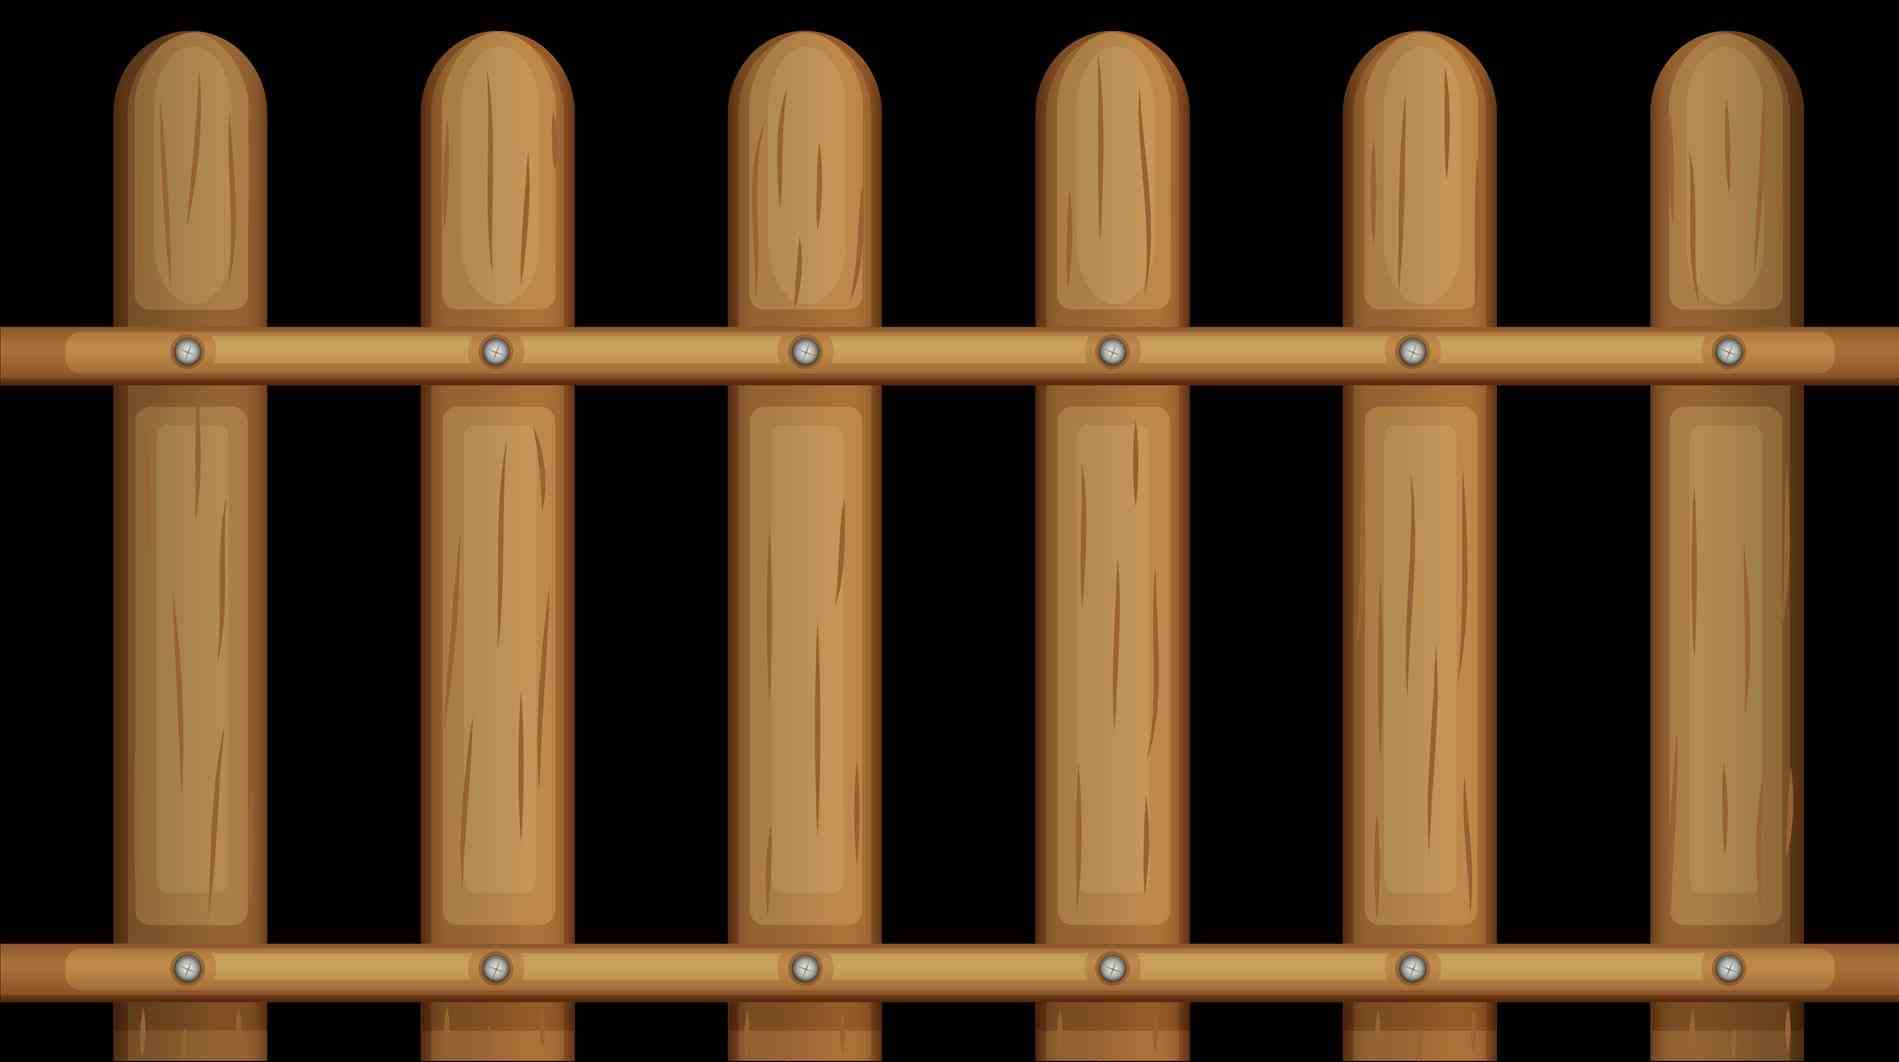 Wooden Fence Drawing at GetDrawings.com   Free for personal use ...